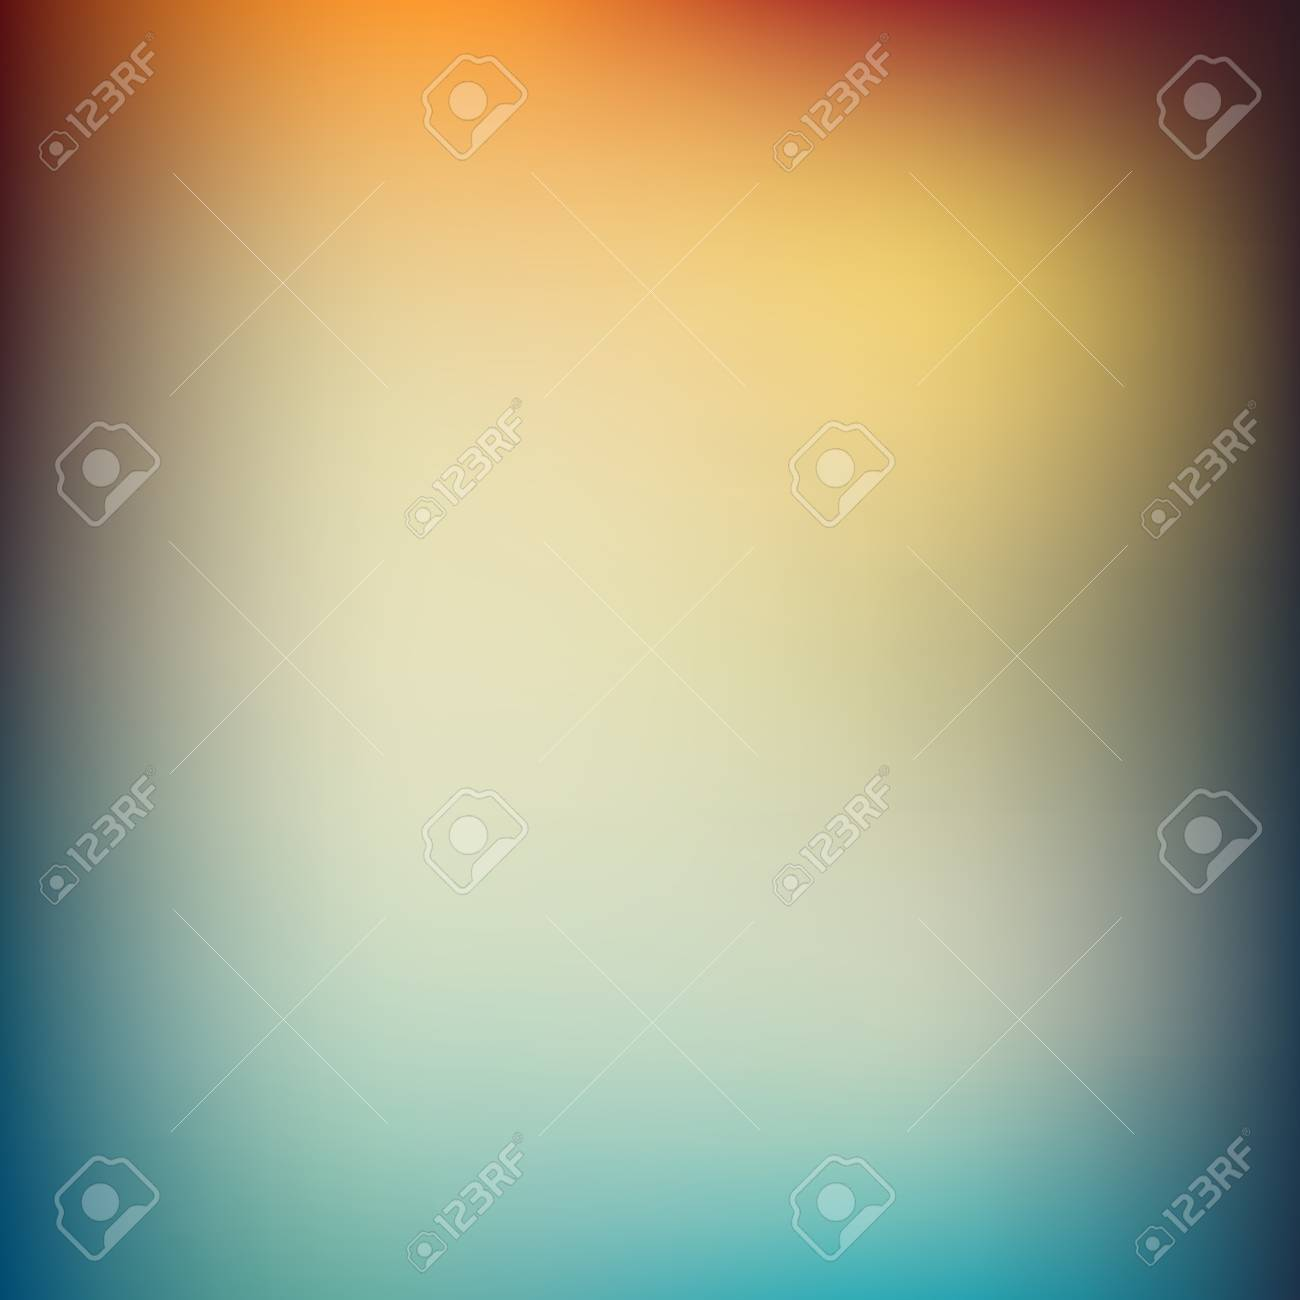 Vector illustration of soft colored abstract background. Summer light background - 54436525